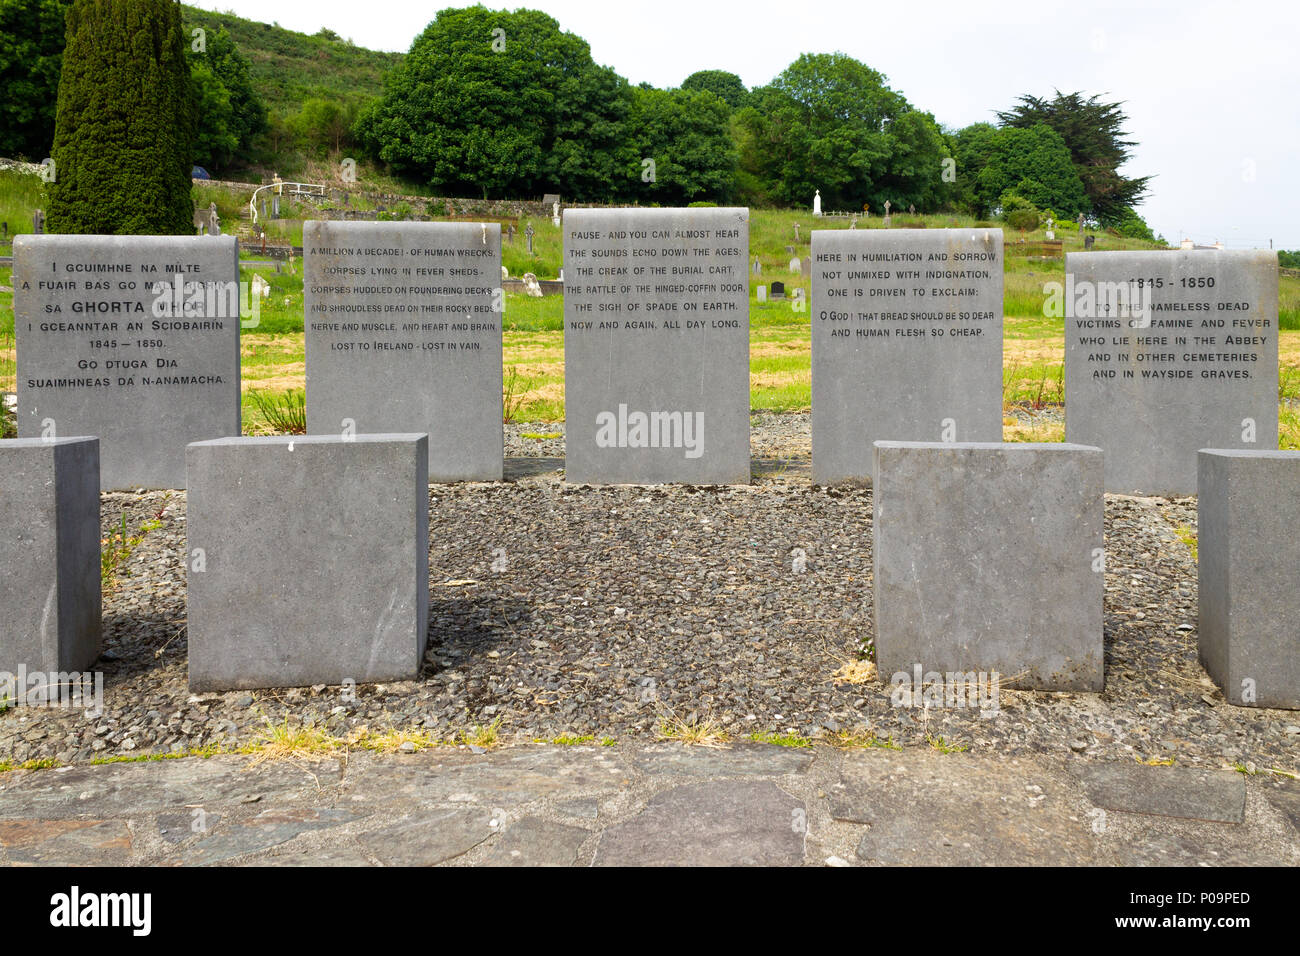 irish-famine-burial-site-with-commemorative-plaques-at-abbeystrewry-cemetery-skibbereen-ireland-P09PED.jpg